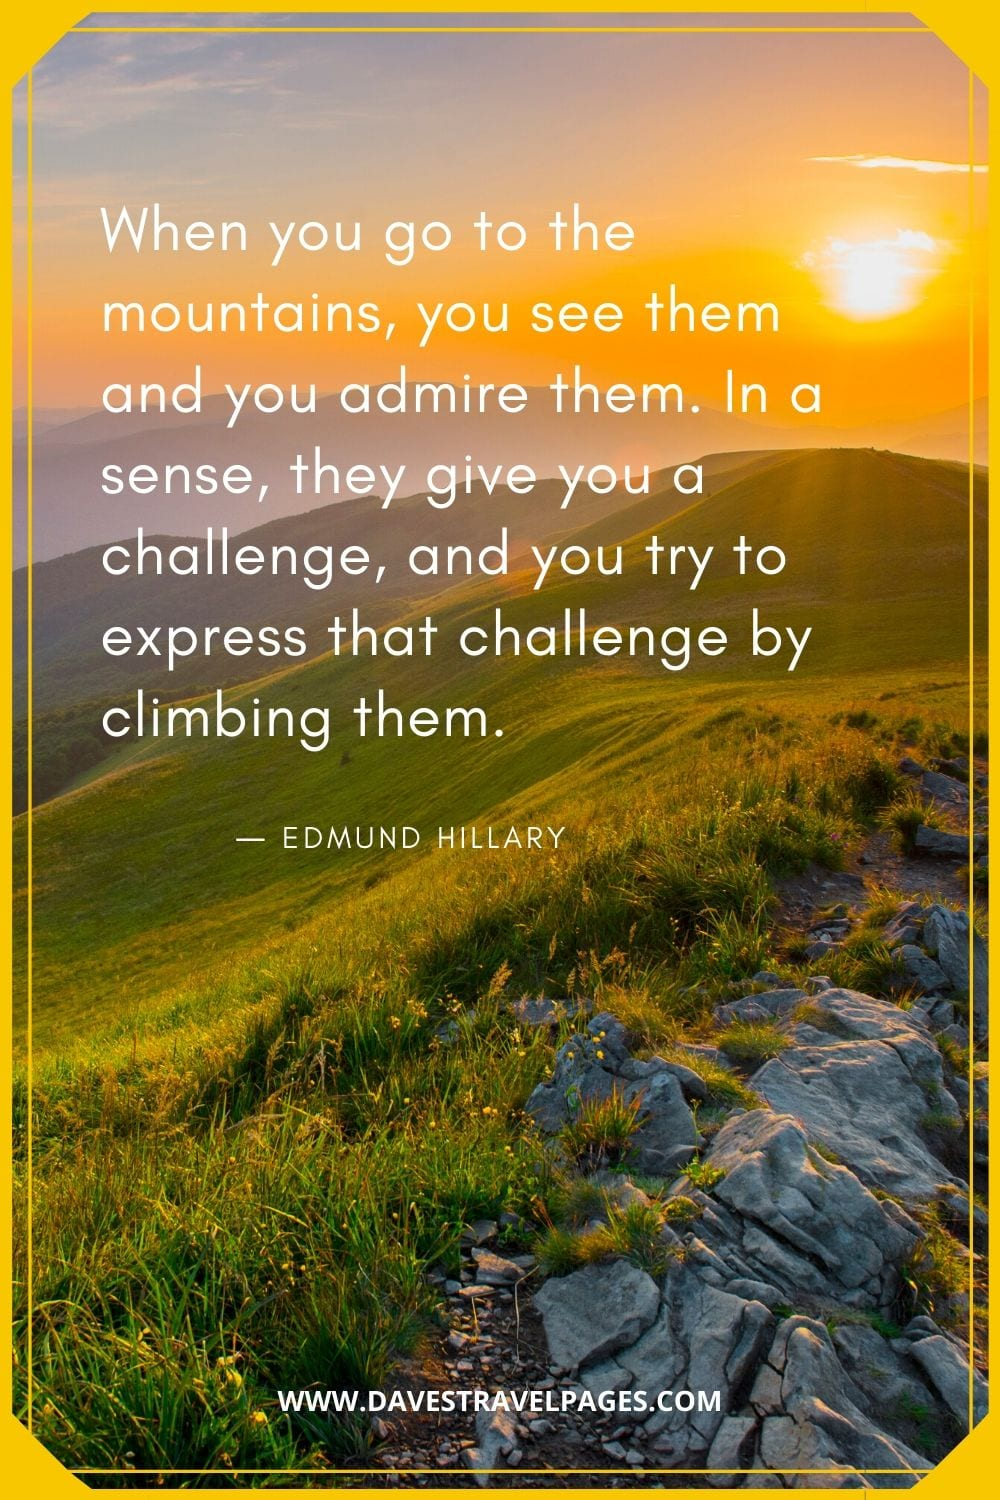 "Quotes about the mountains: ""When you go to the mountains, you see them and you admire them. In a sense, they give you a challenge, and you try to express that challenge by climbing them."" - Edmund Hillary"